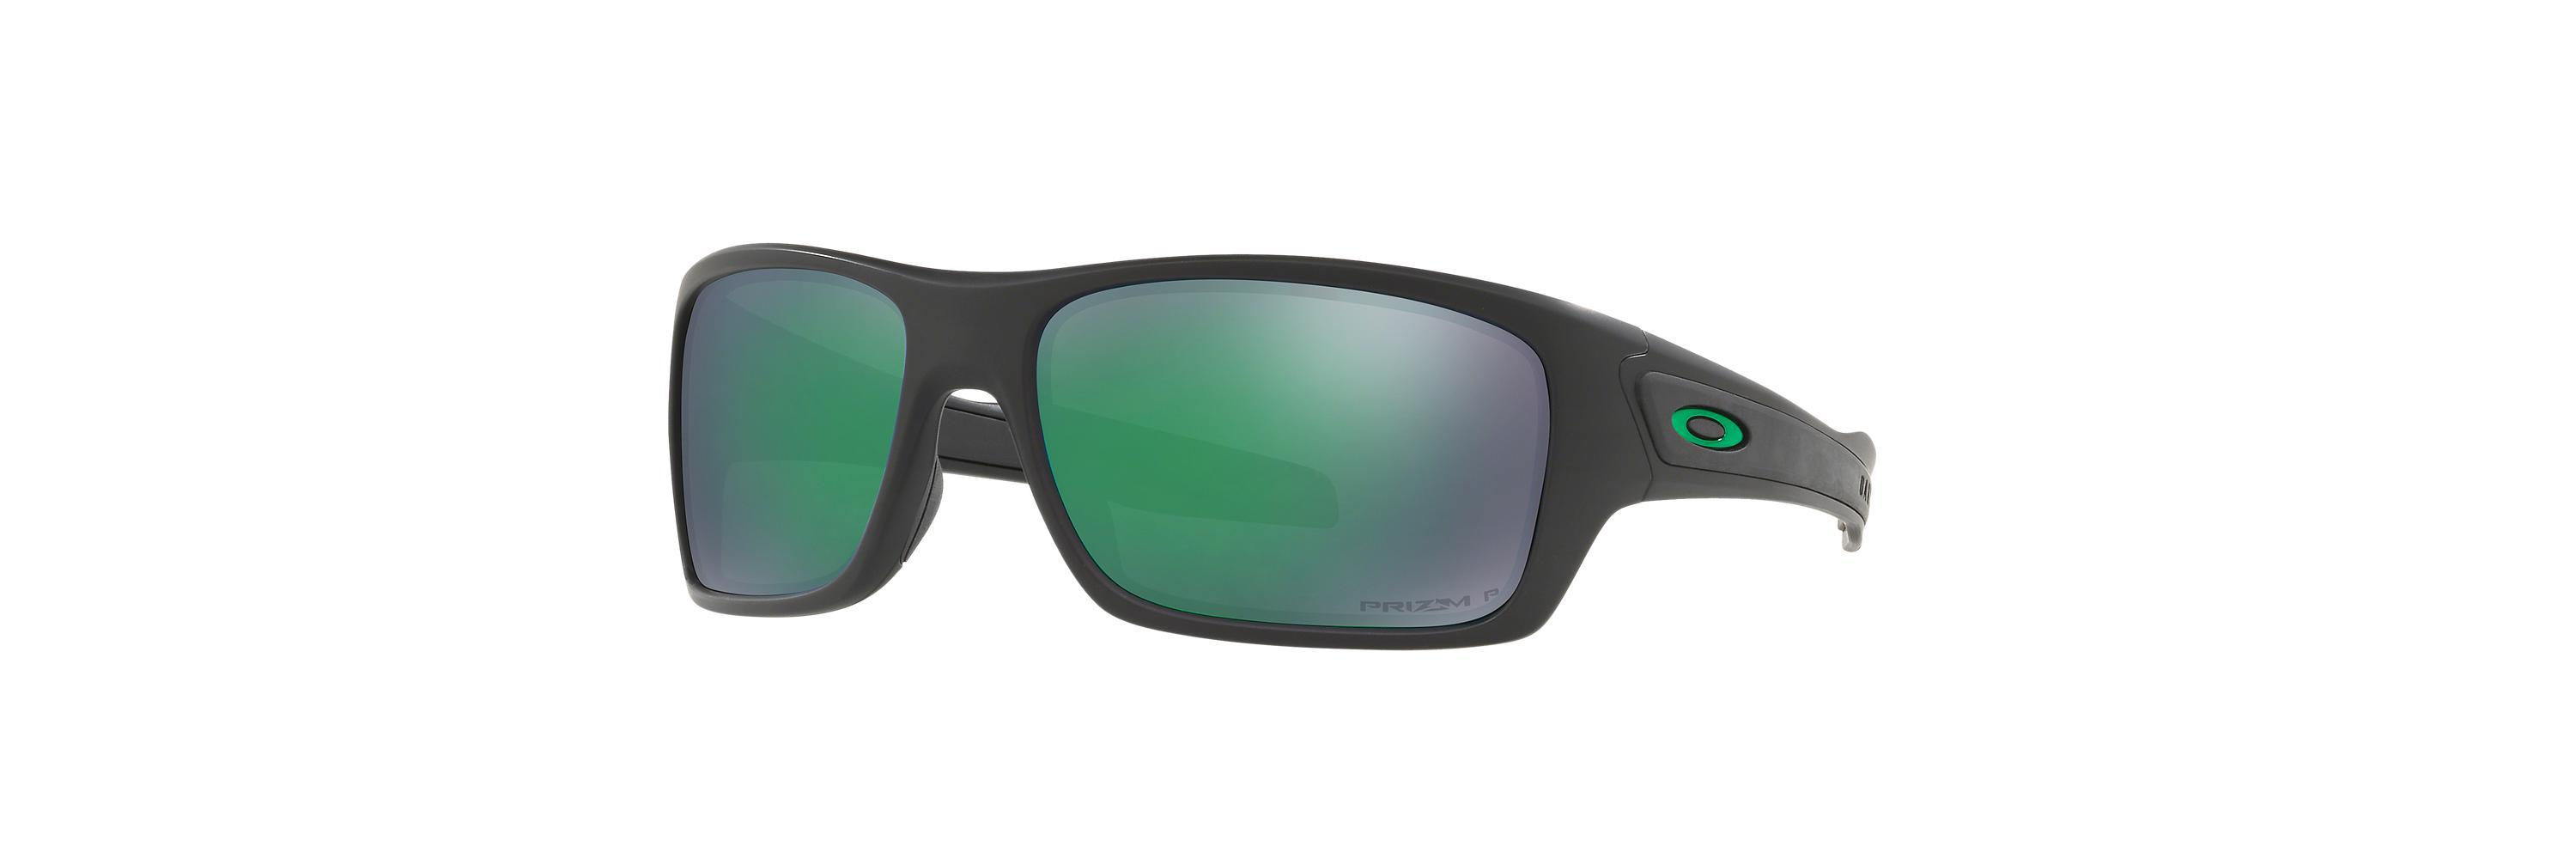 16c4d5d79f Lyst - Oakley Oo9263 Turbine Prizm Jade Only At Sunglass Hut in ...